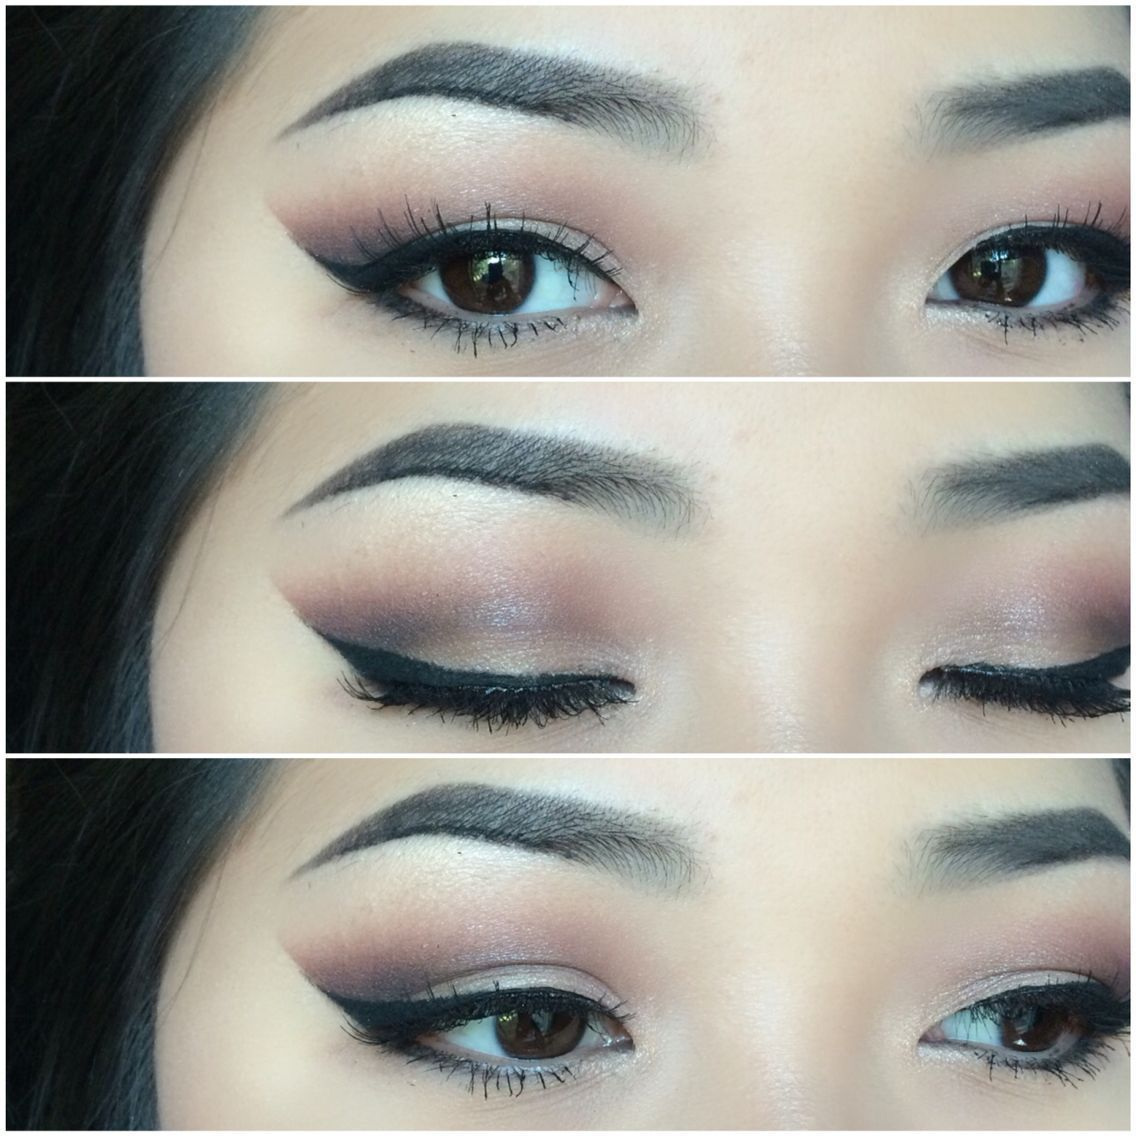 Makeup for Asian eyes. Follow me on my personal Instagram